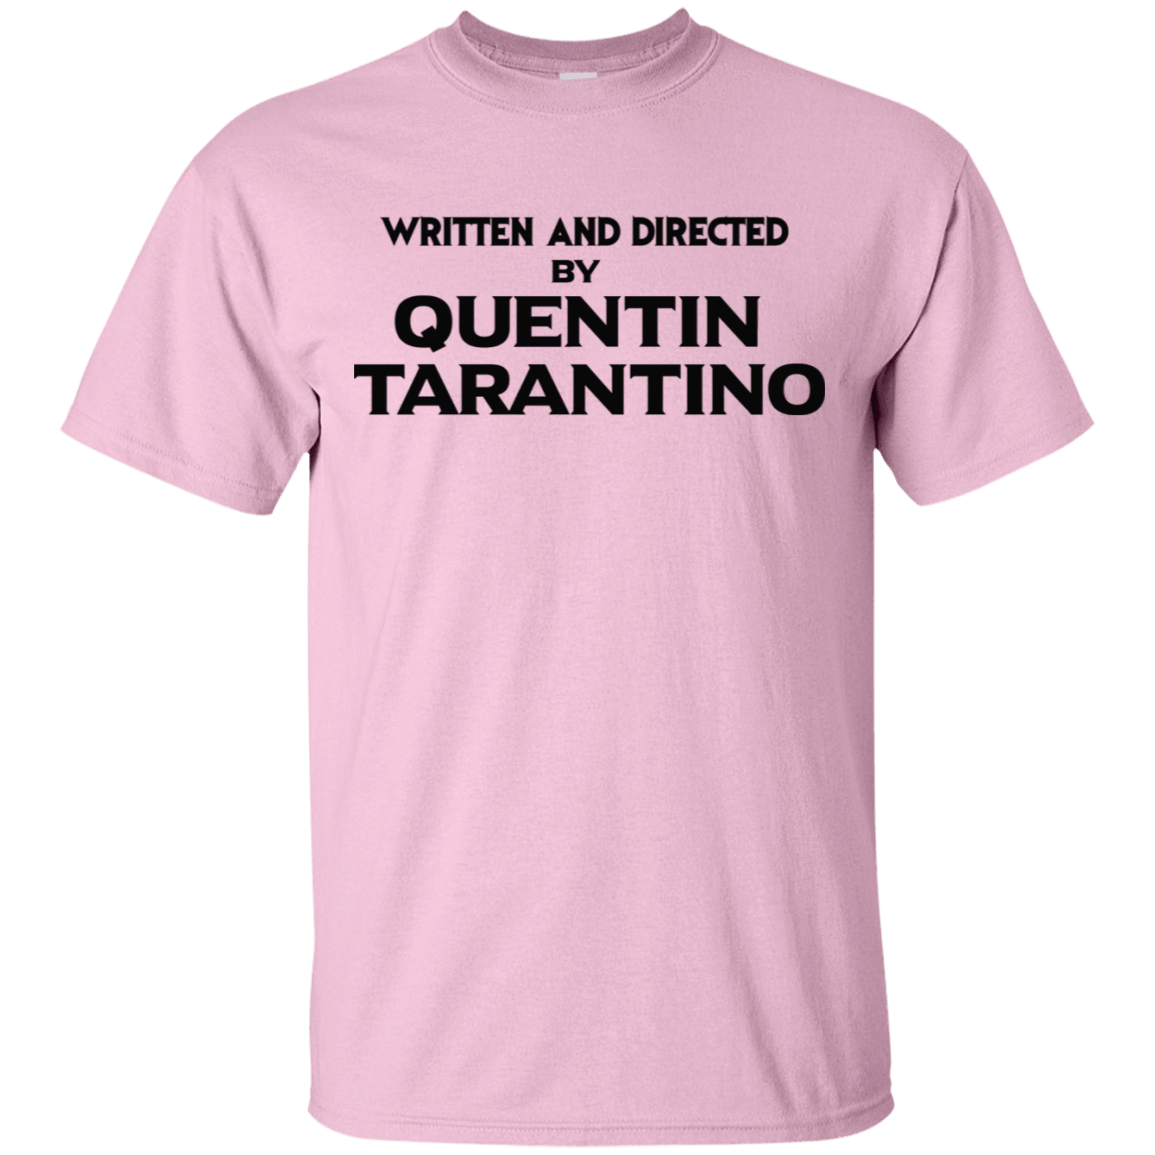 Written And Directed By Quentin Tarantino 22-2474-71738998-12562 - Tee Ript